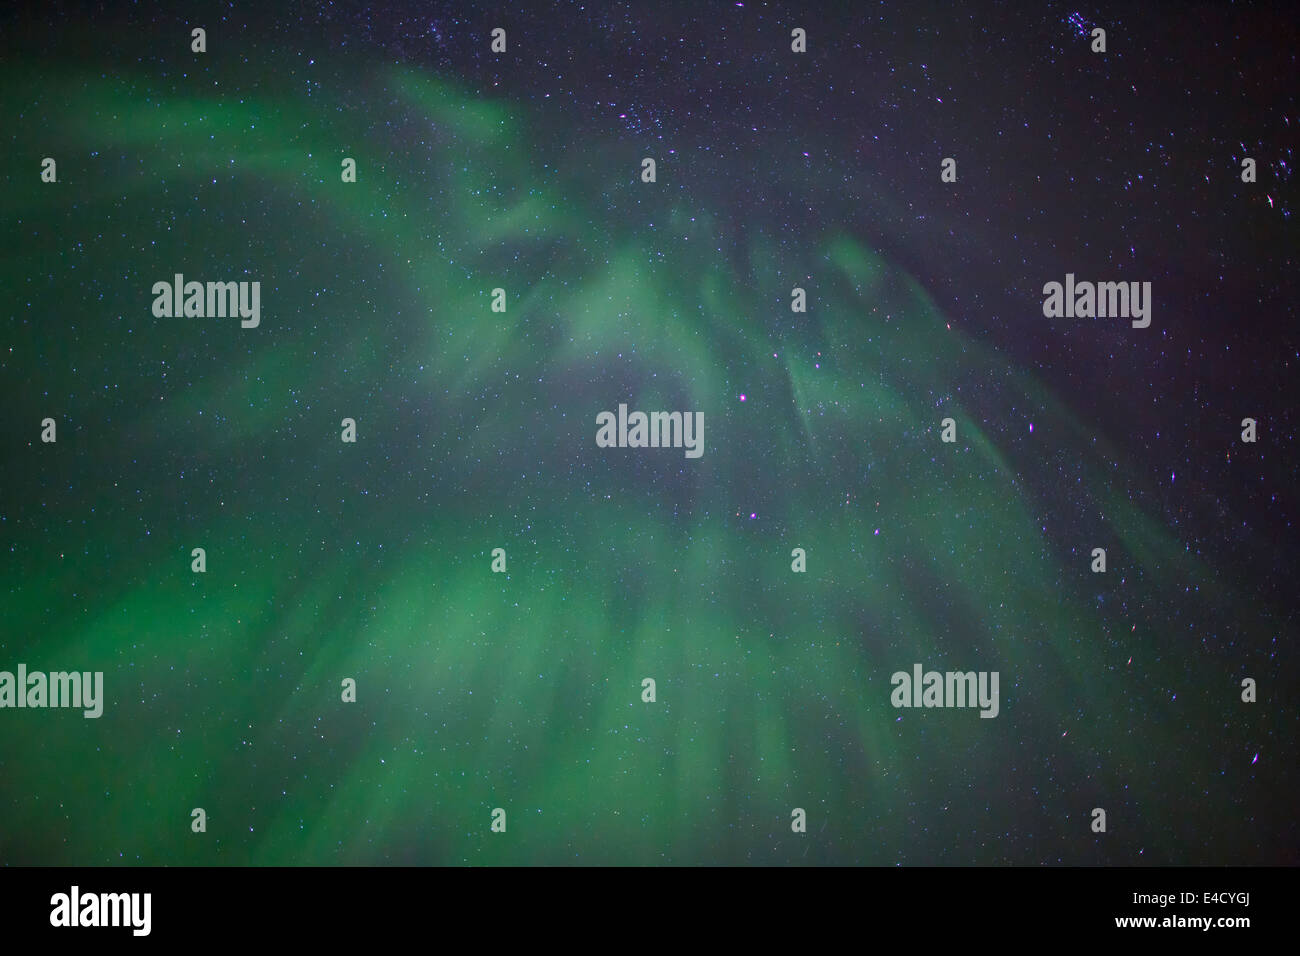 Aurora borealis over Chugach National Forest, near Seward, Alaska. - Stock Image